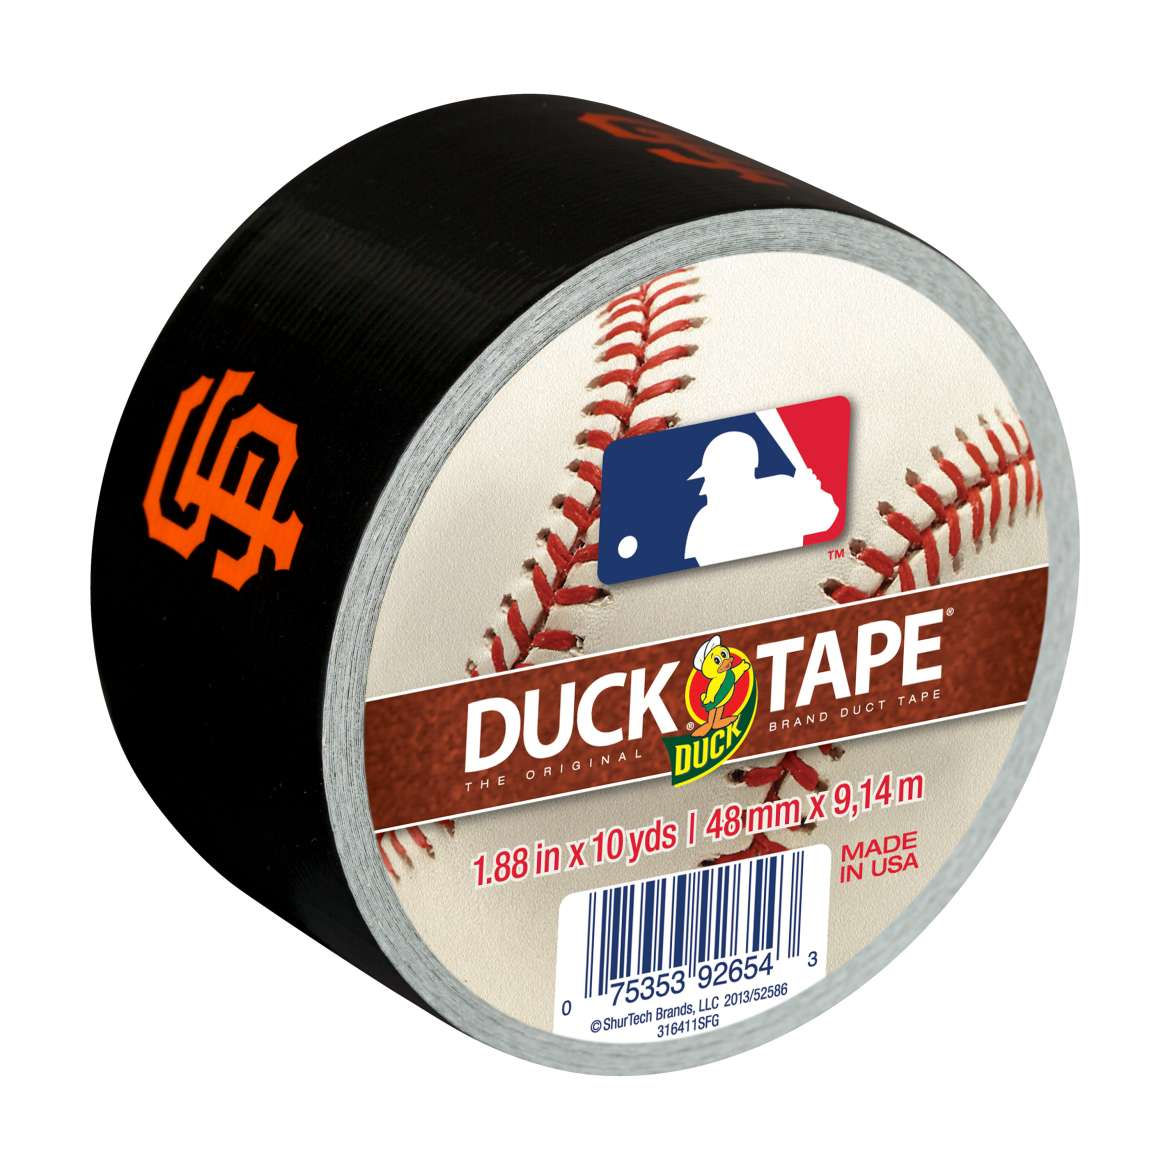 MLB Licensed Duck Tape® Brand Duct Tape - San Francisco Giants, 1.88 in. x 10 yd. Image